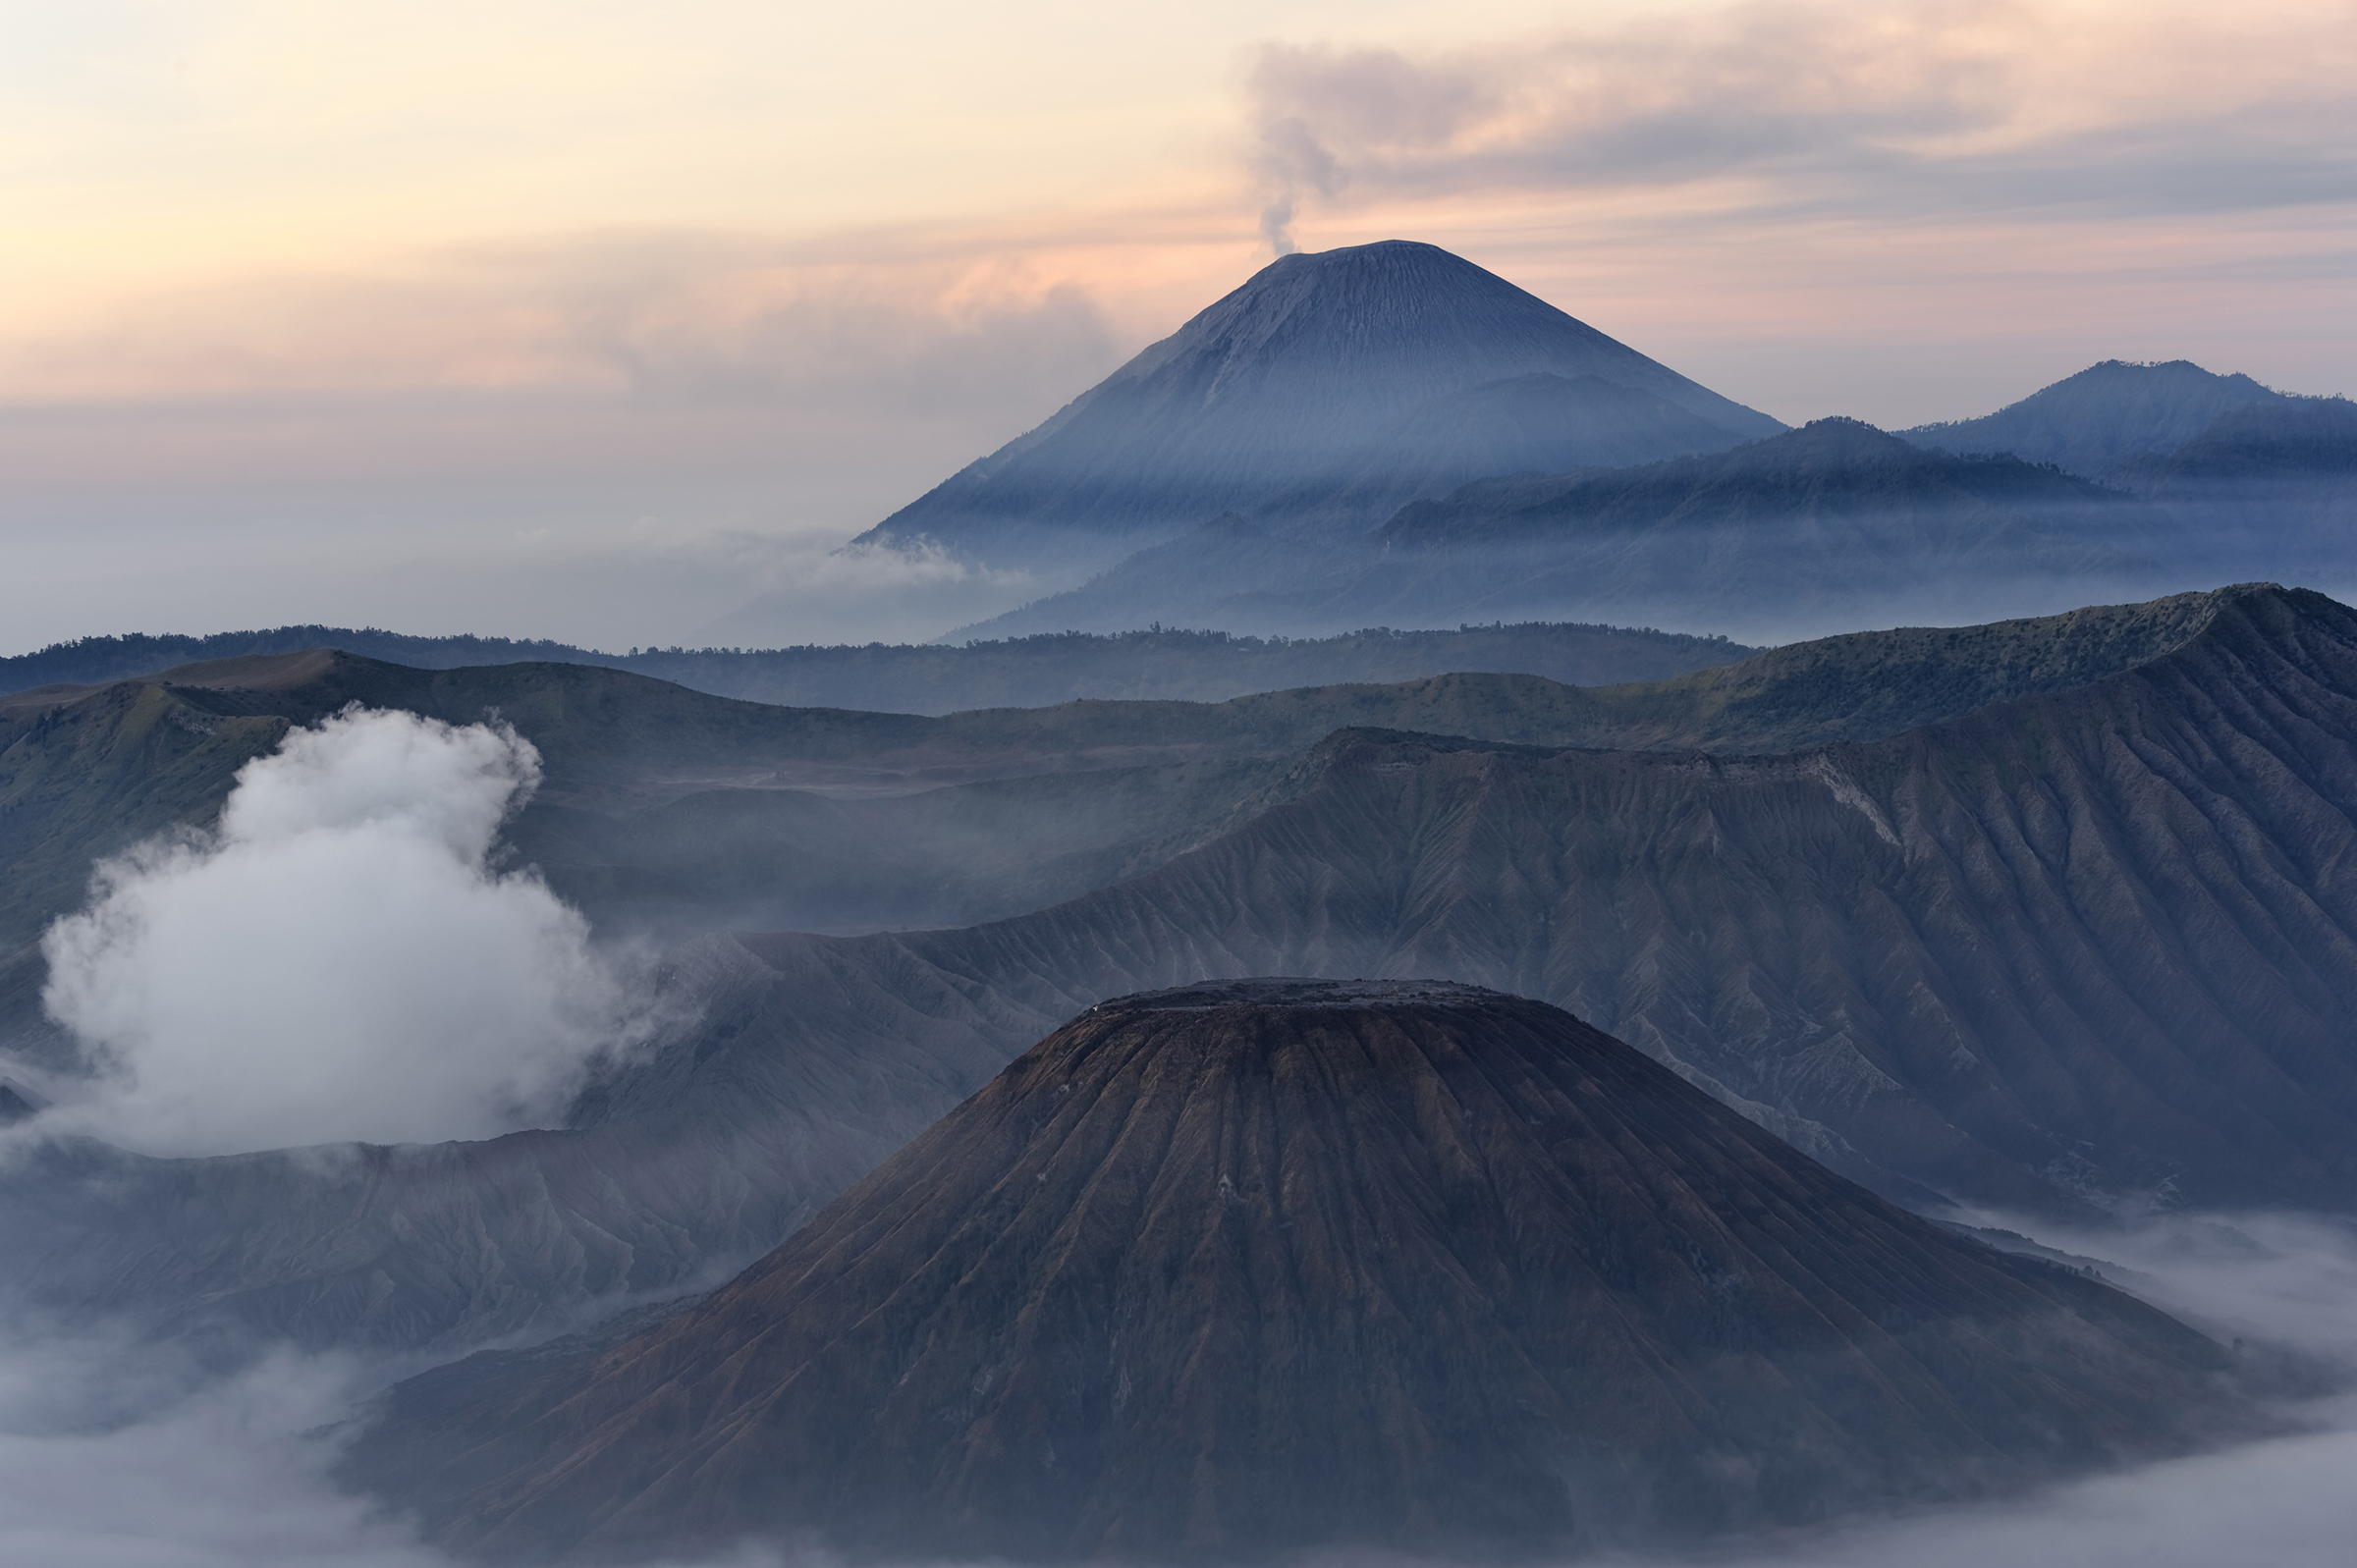 Scalata del vulcano Indonesia